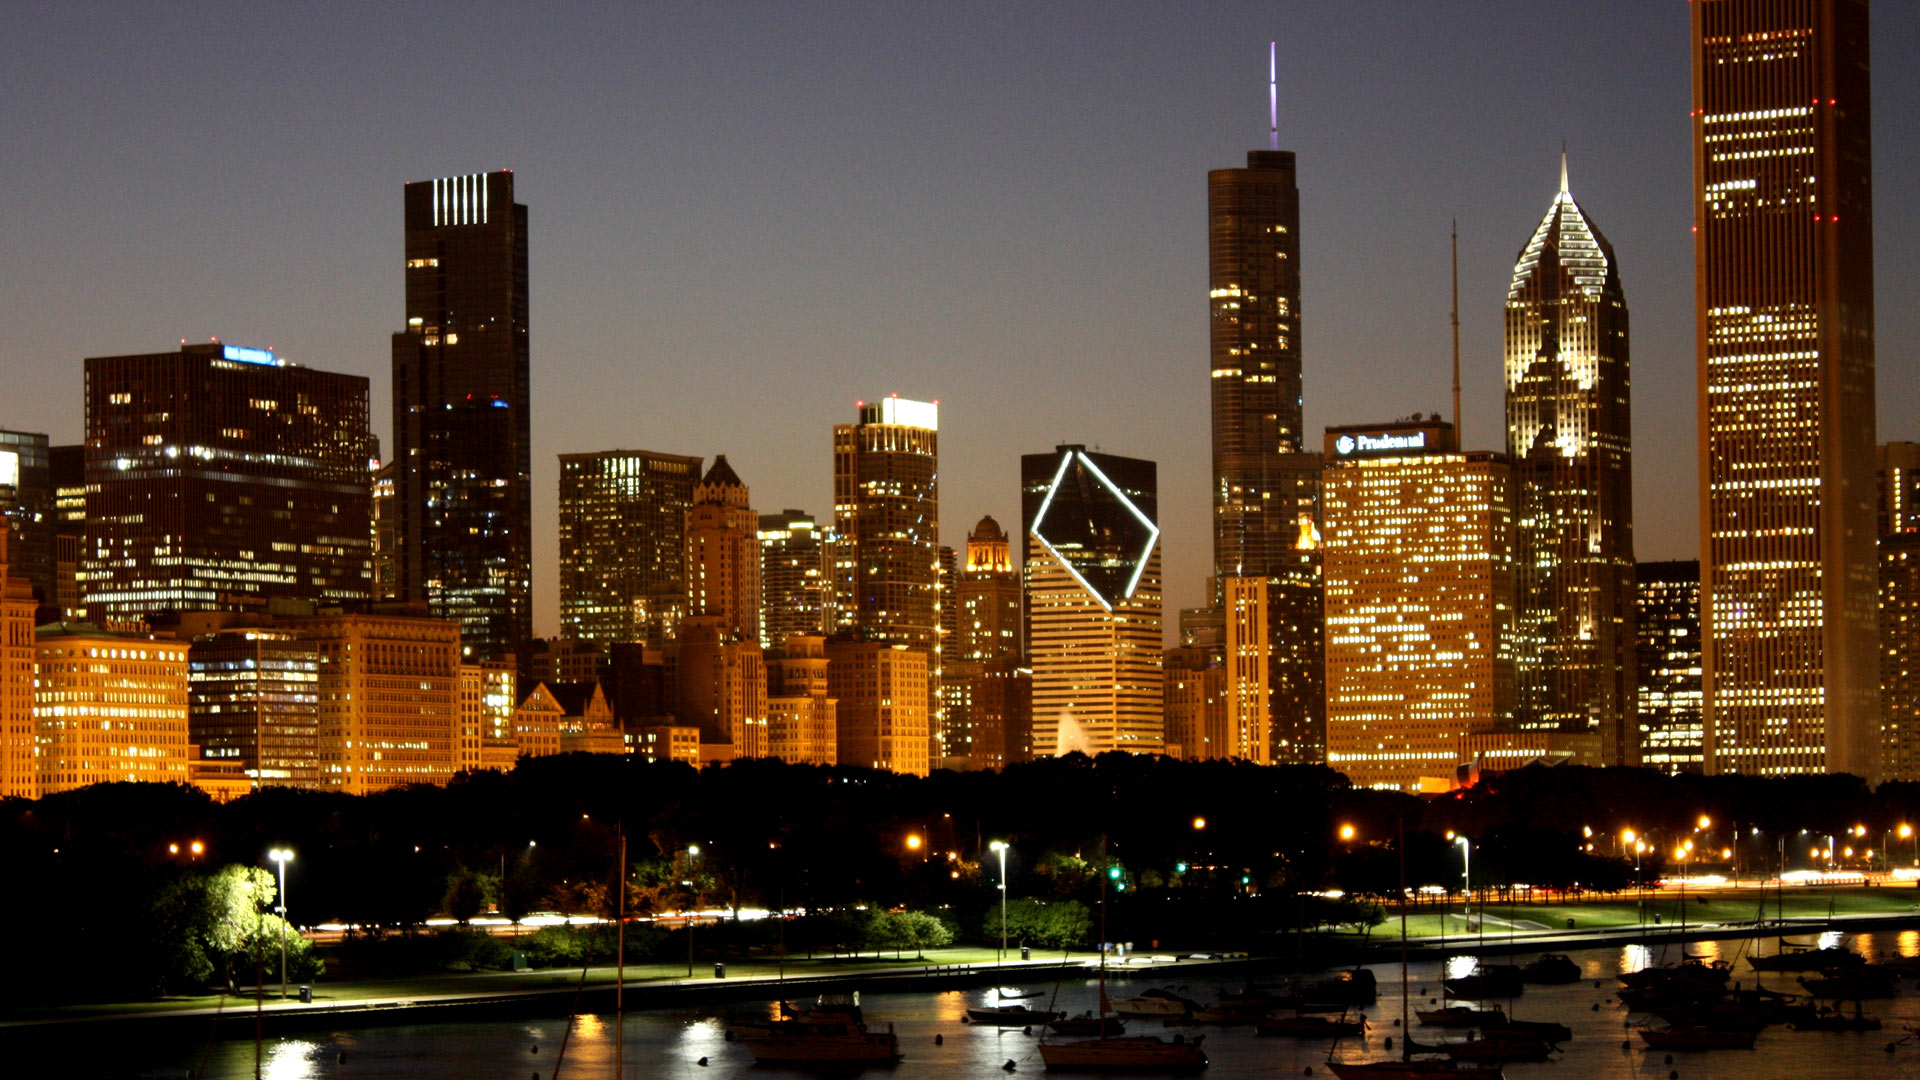 Chicago-skyline-World-wallpaper-wp3803742